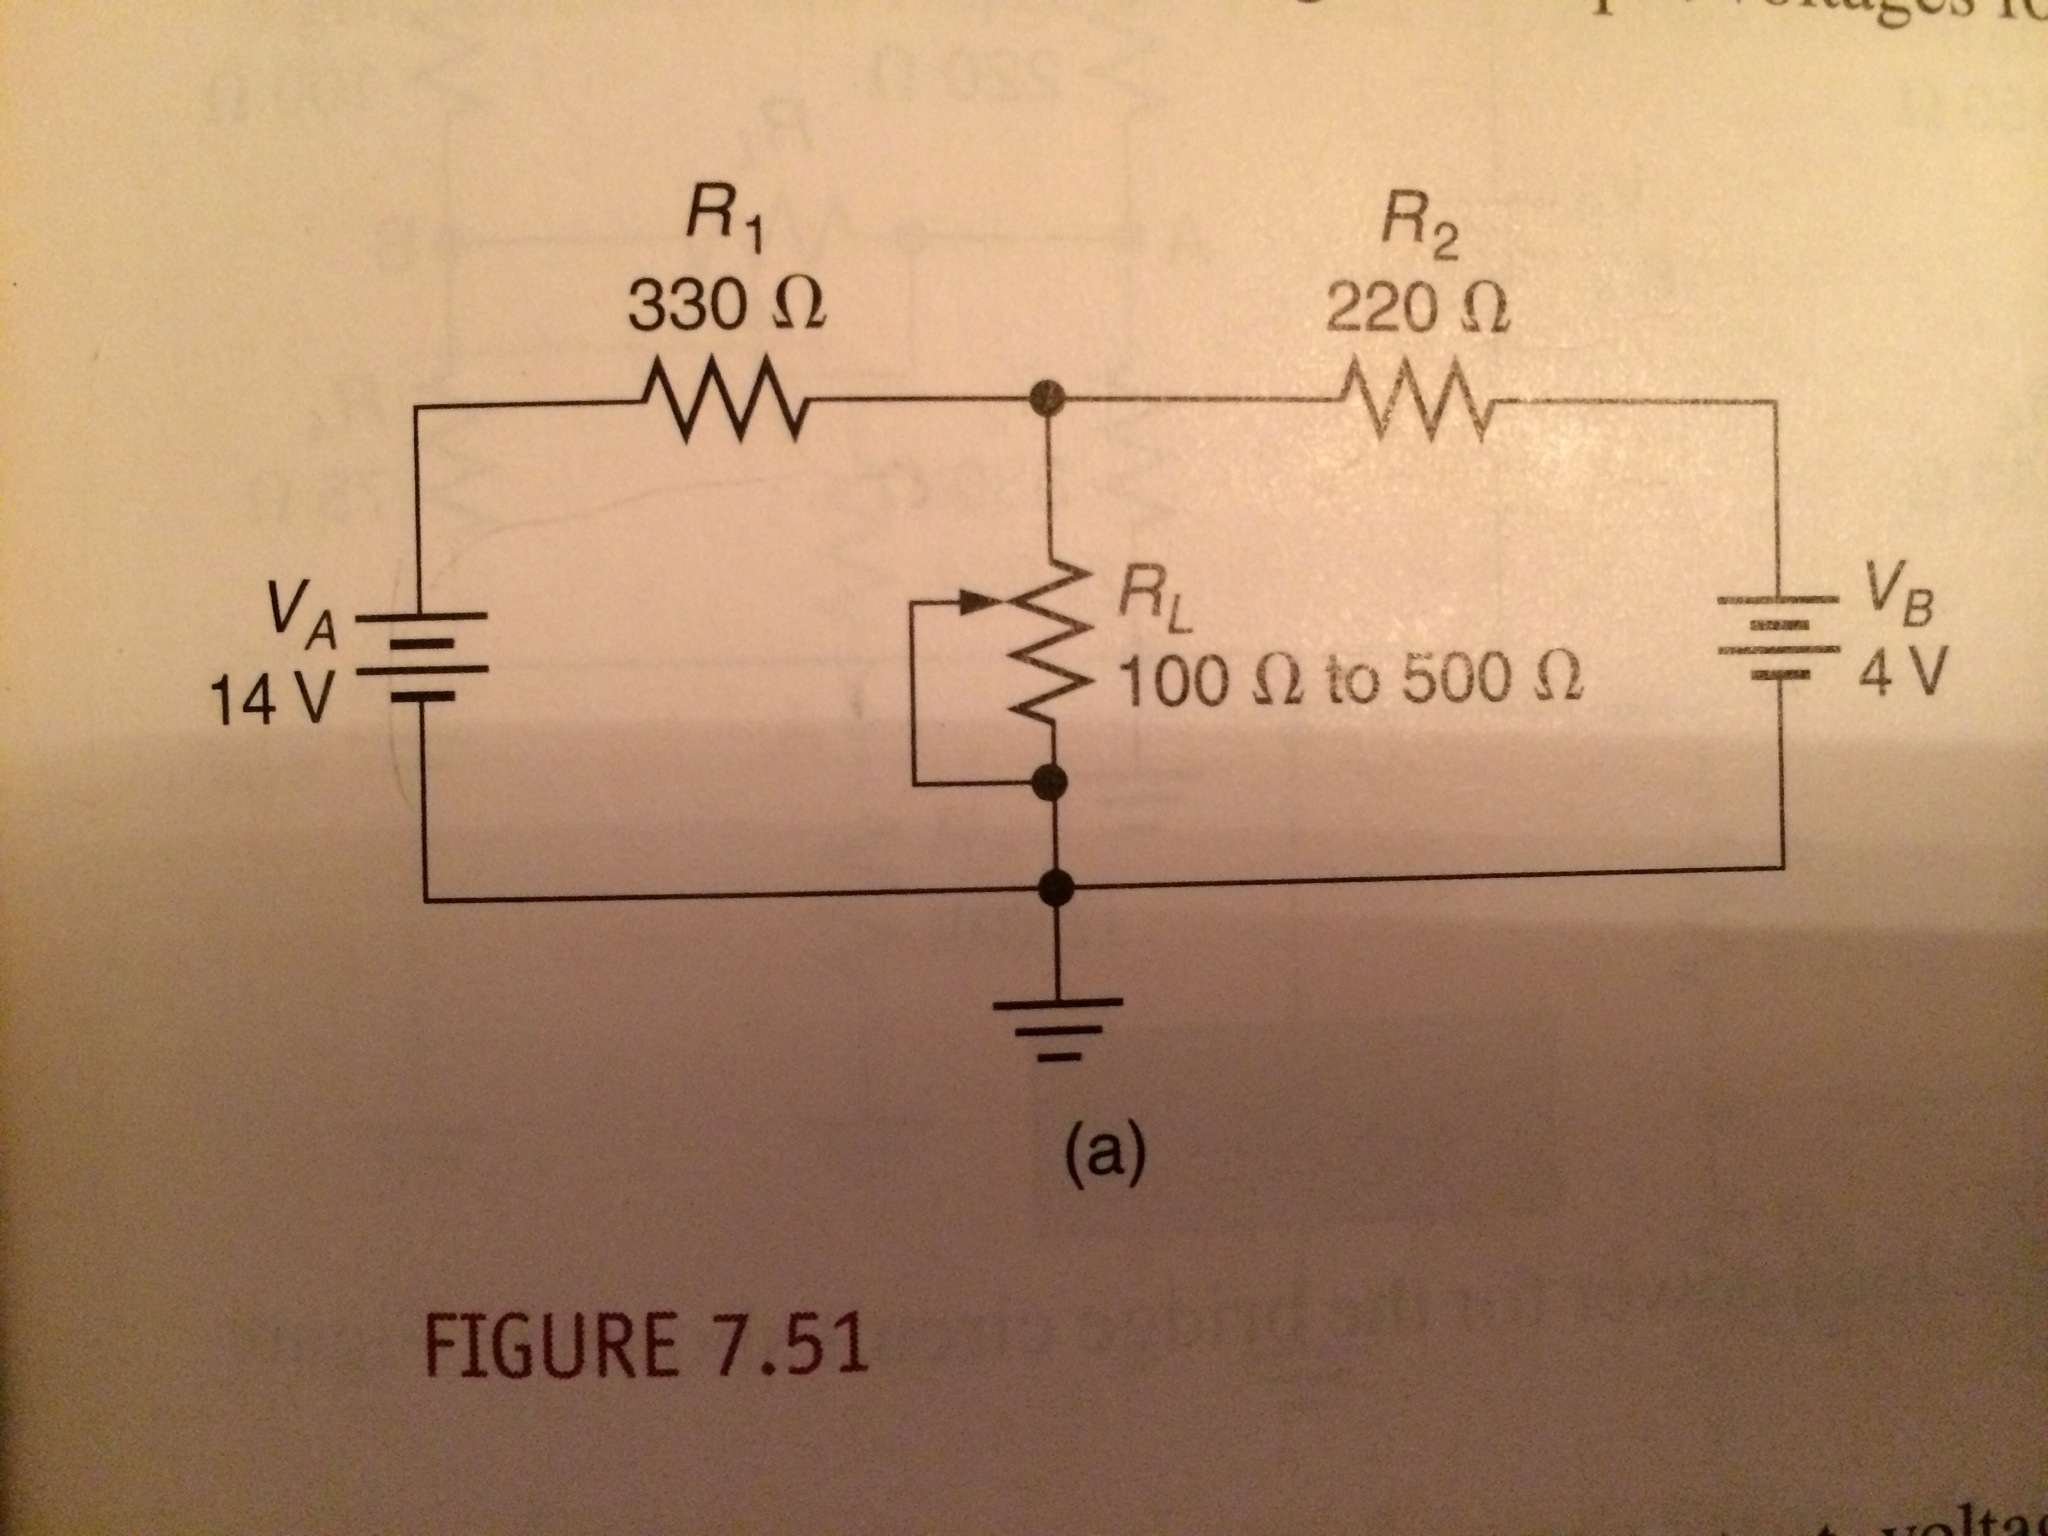 Calculate the normal range of output voltages for